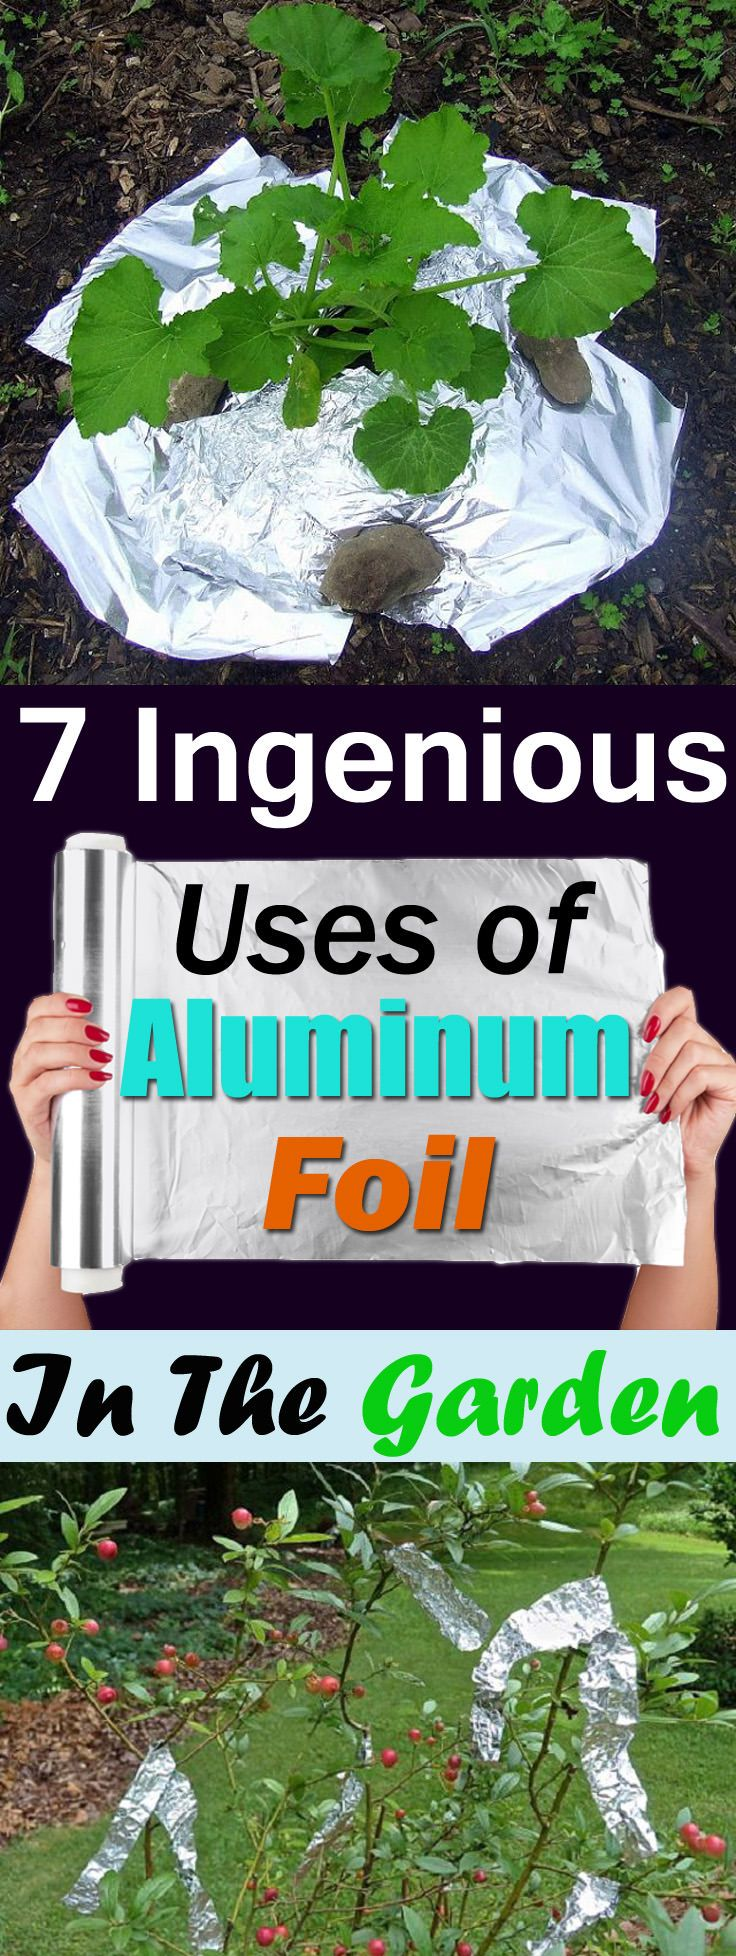 Aluminum foil has so many uses in the kitchen and home but do you know it is also useful in the garden? Check out the 7 best Aluminum Foil Uses in the garden!